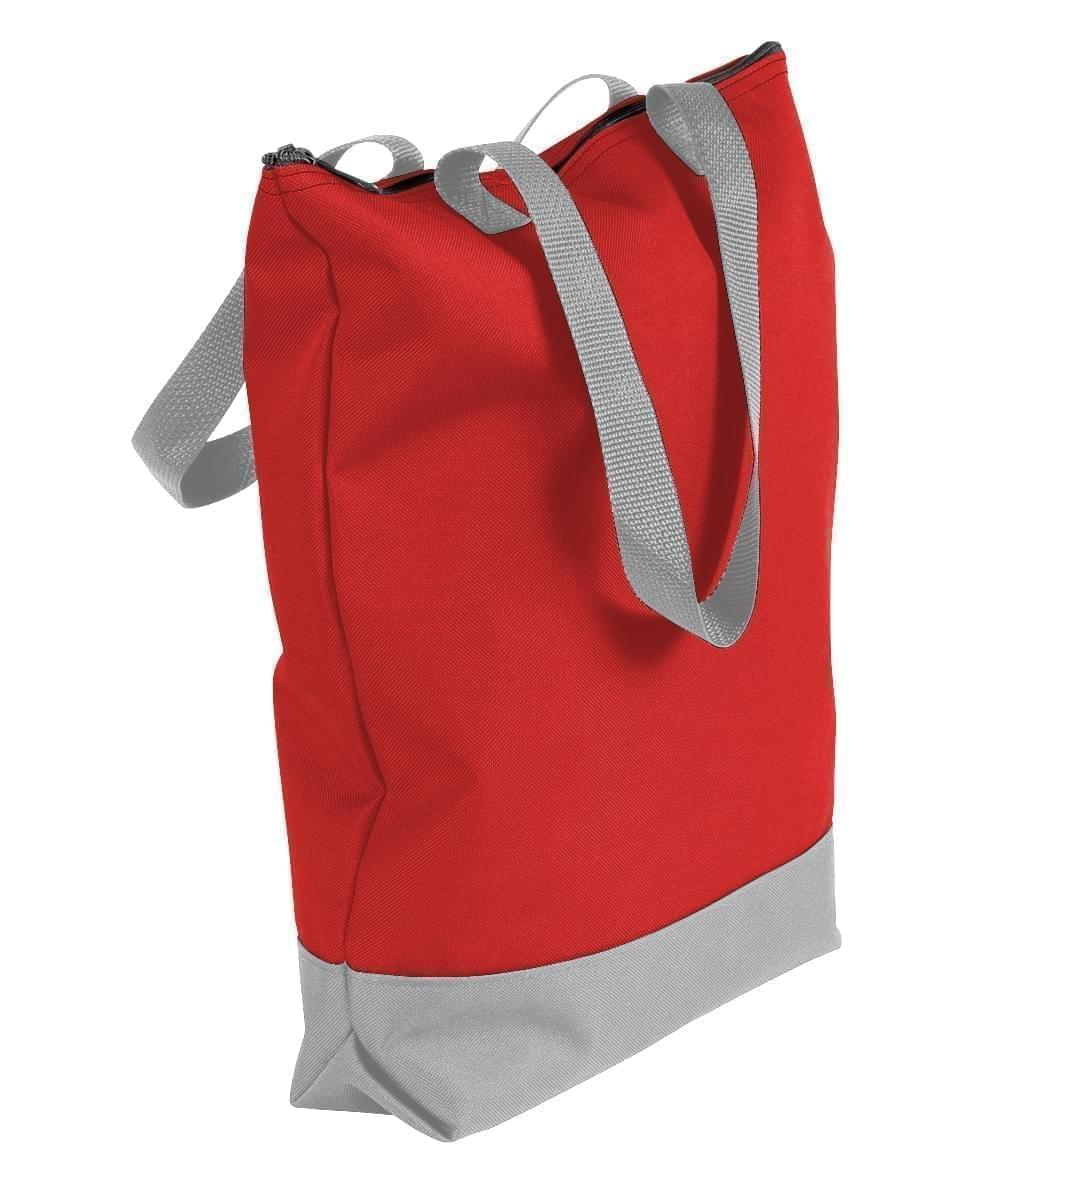 USA Made Canvas Portfolio Tote Bags, Red-Grey, 1AAMX1UAEU